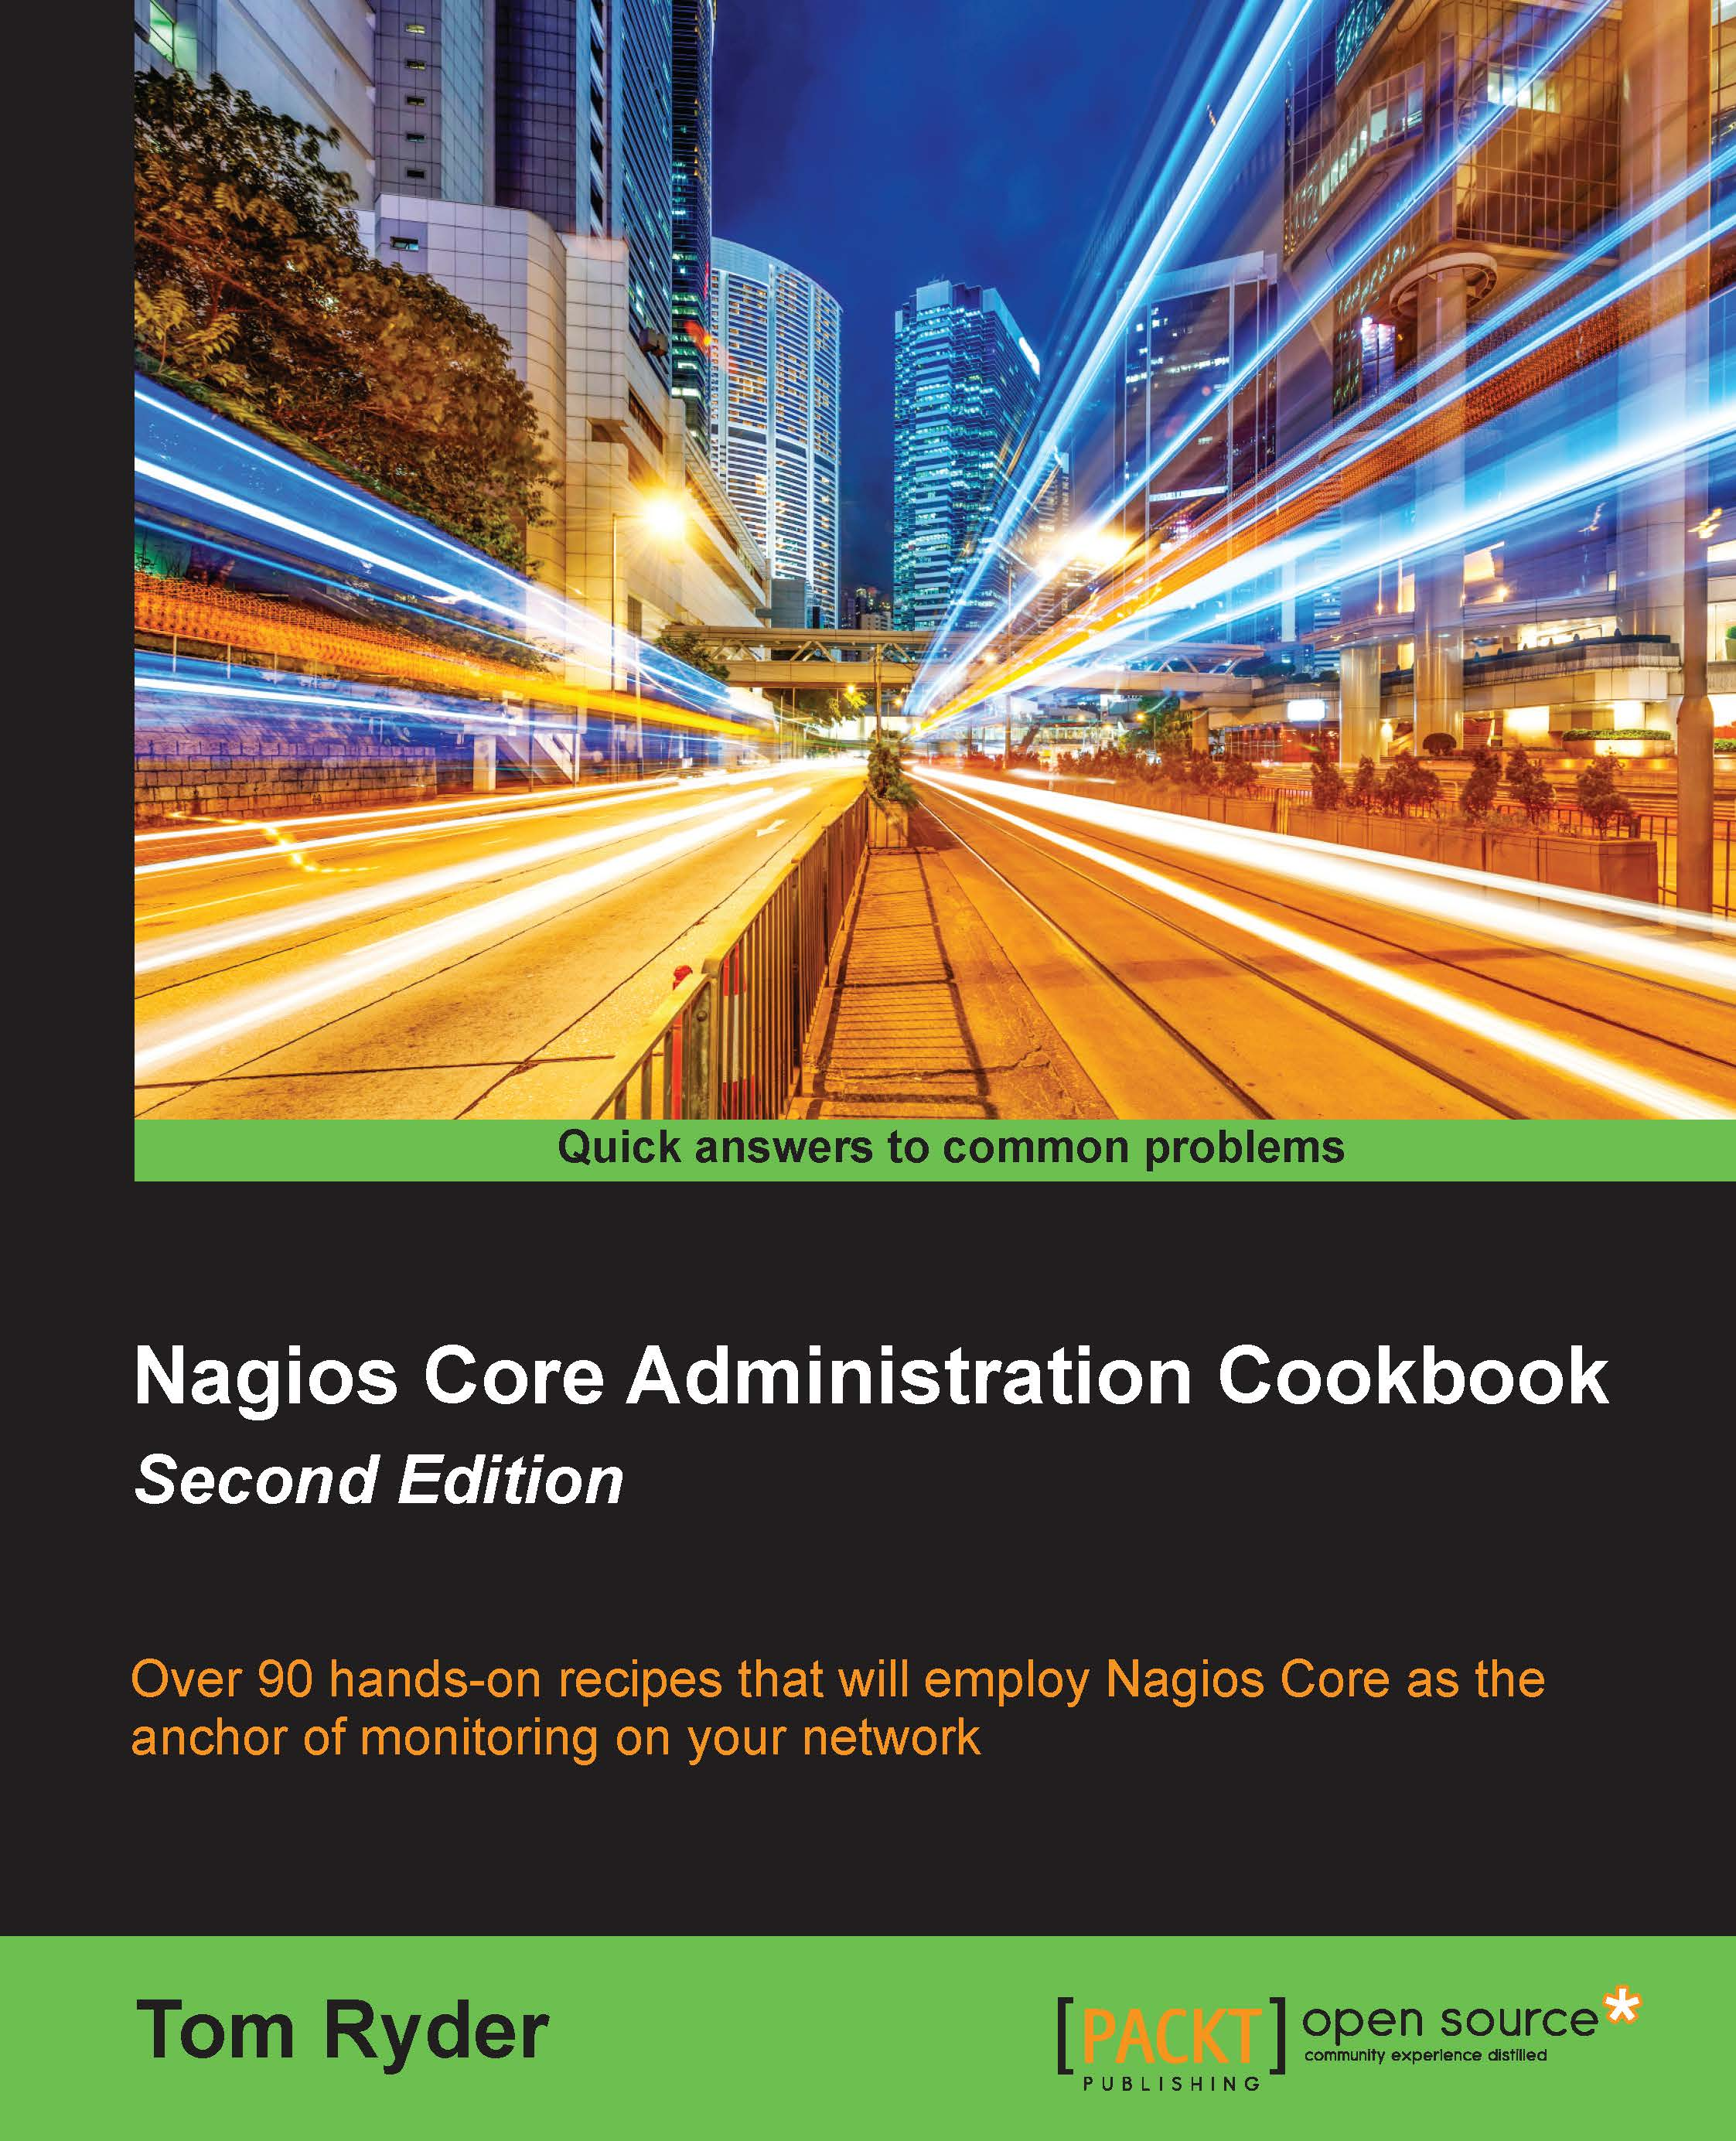 Nagios Core Administration Cookbook - Second Edition by Tom